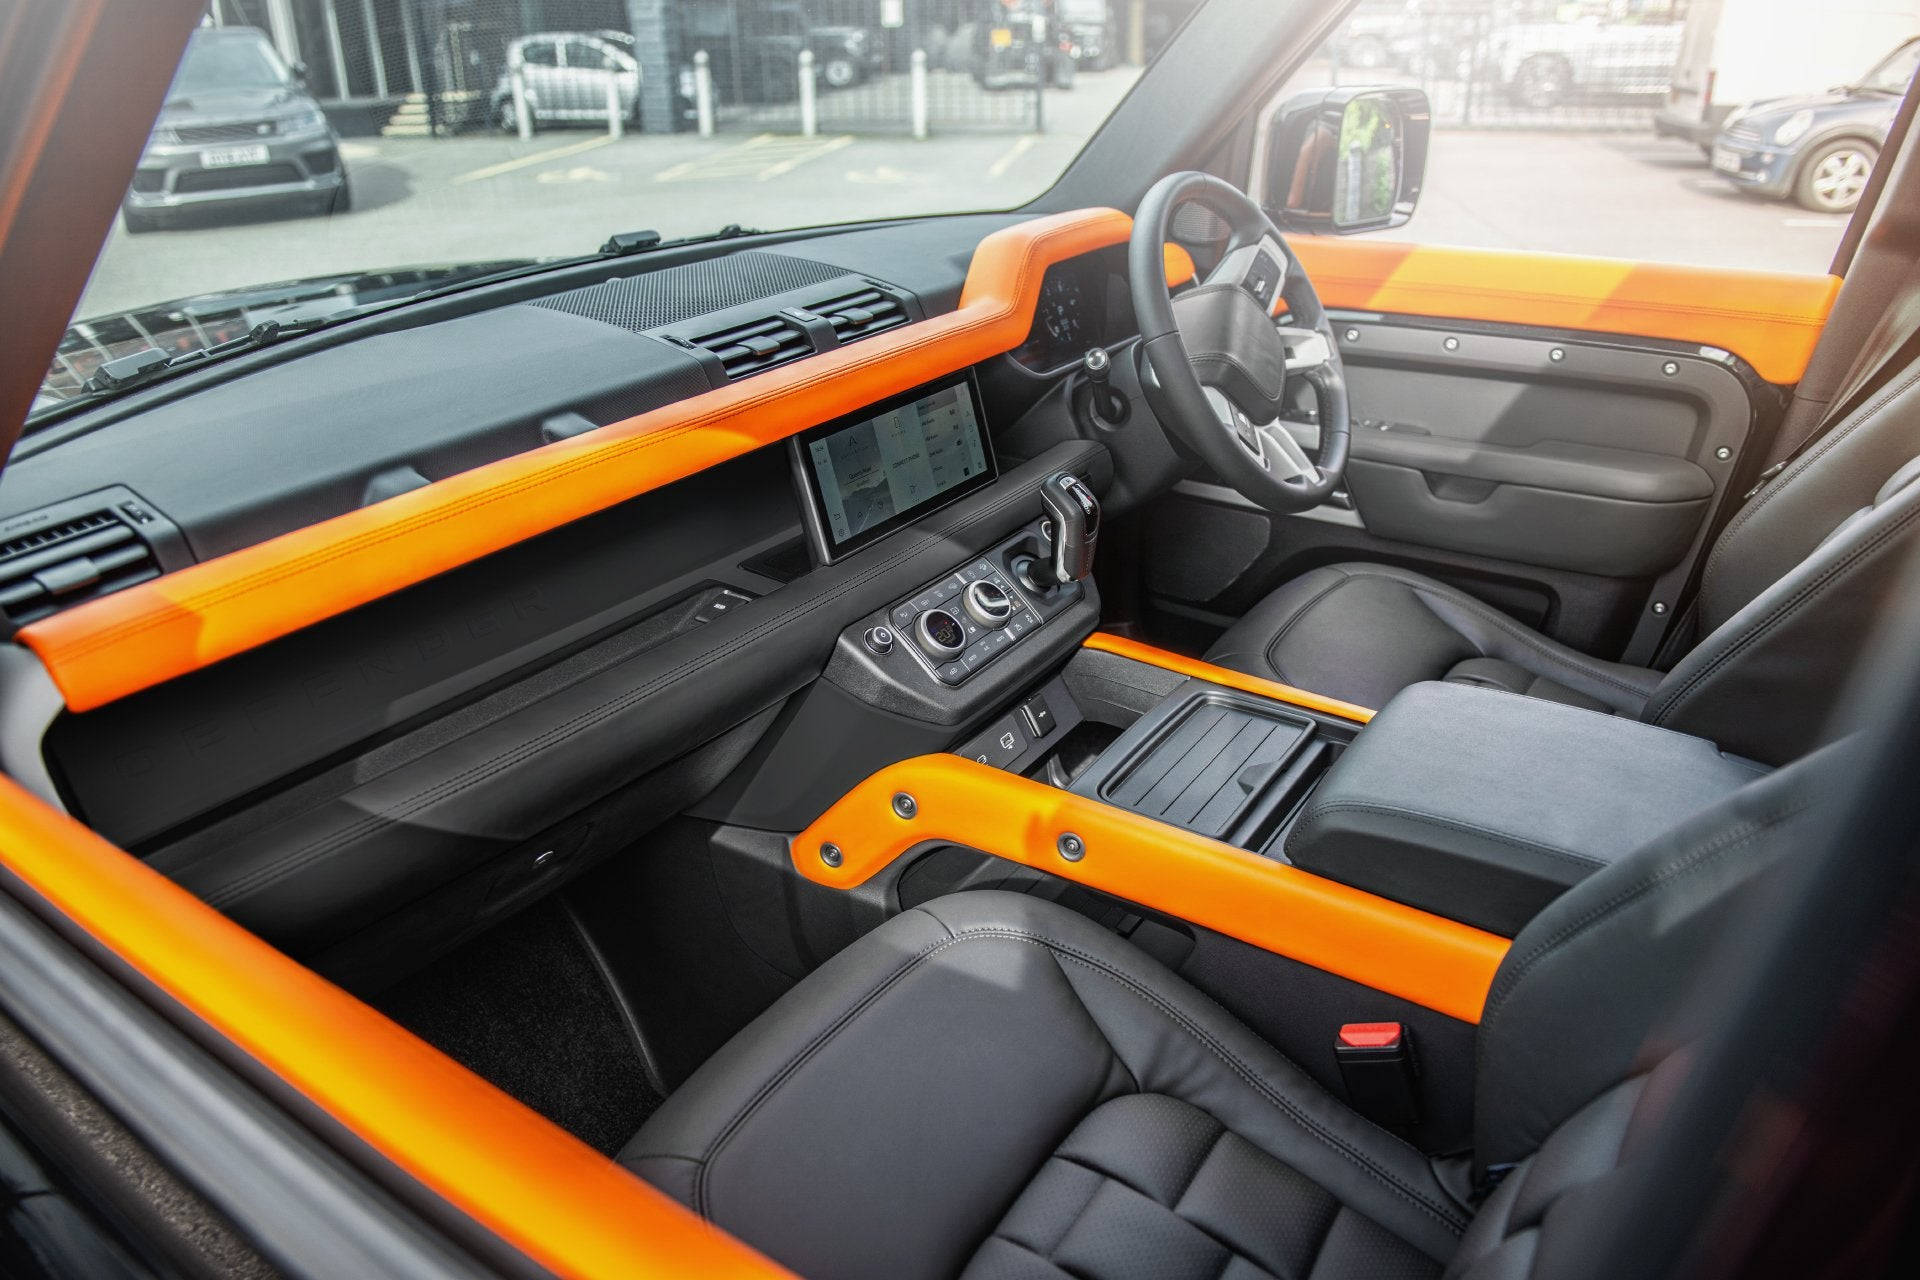 Land Rover Defender 90 (2020-Present) Environment 2: Upper and Lower Interior - Project Kahn